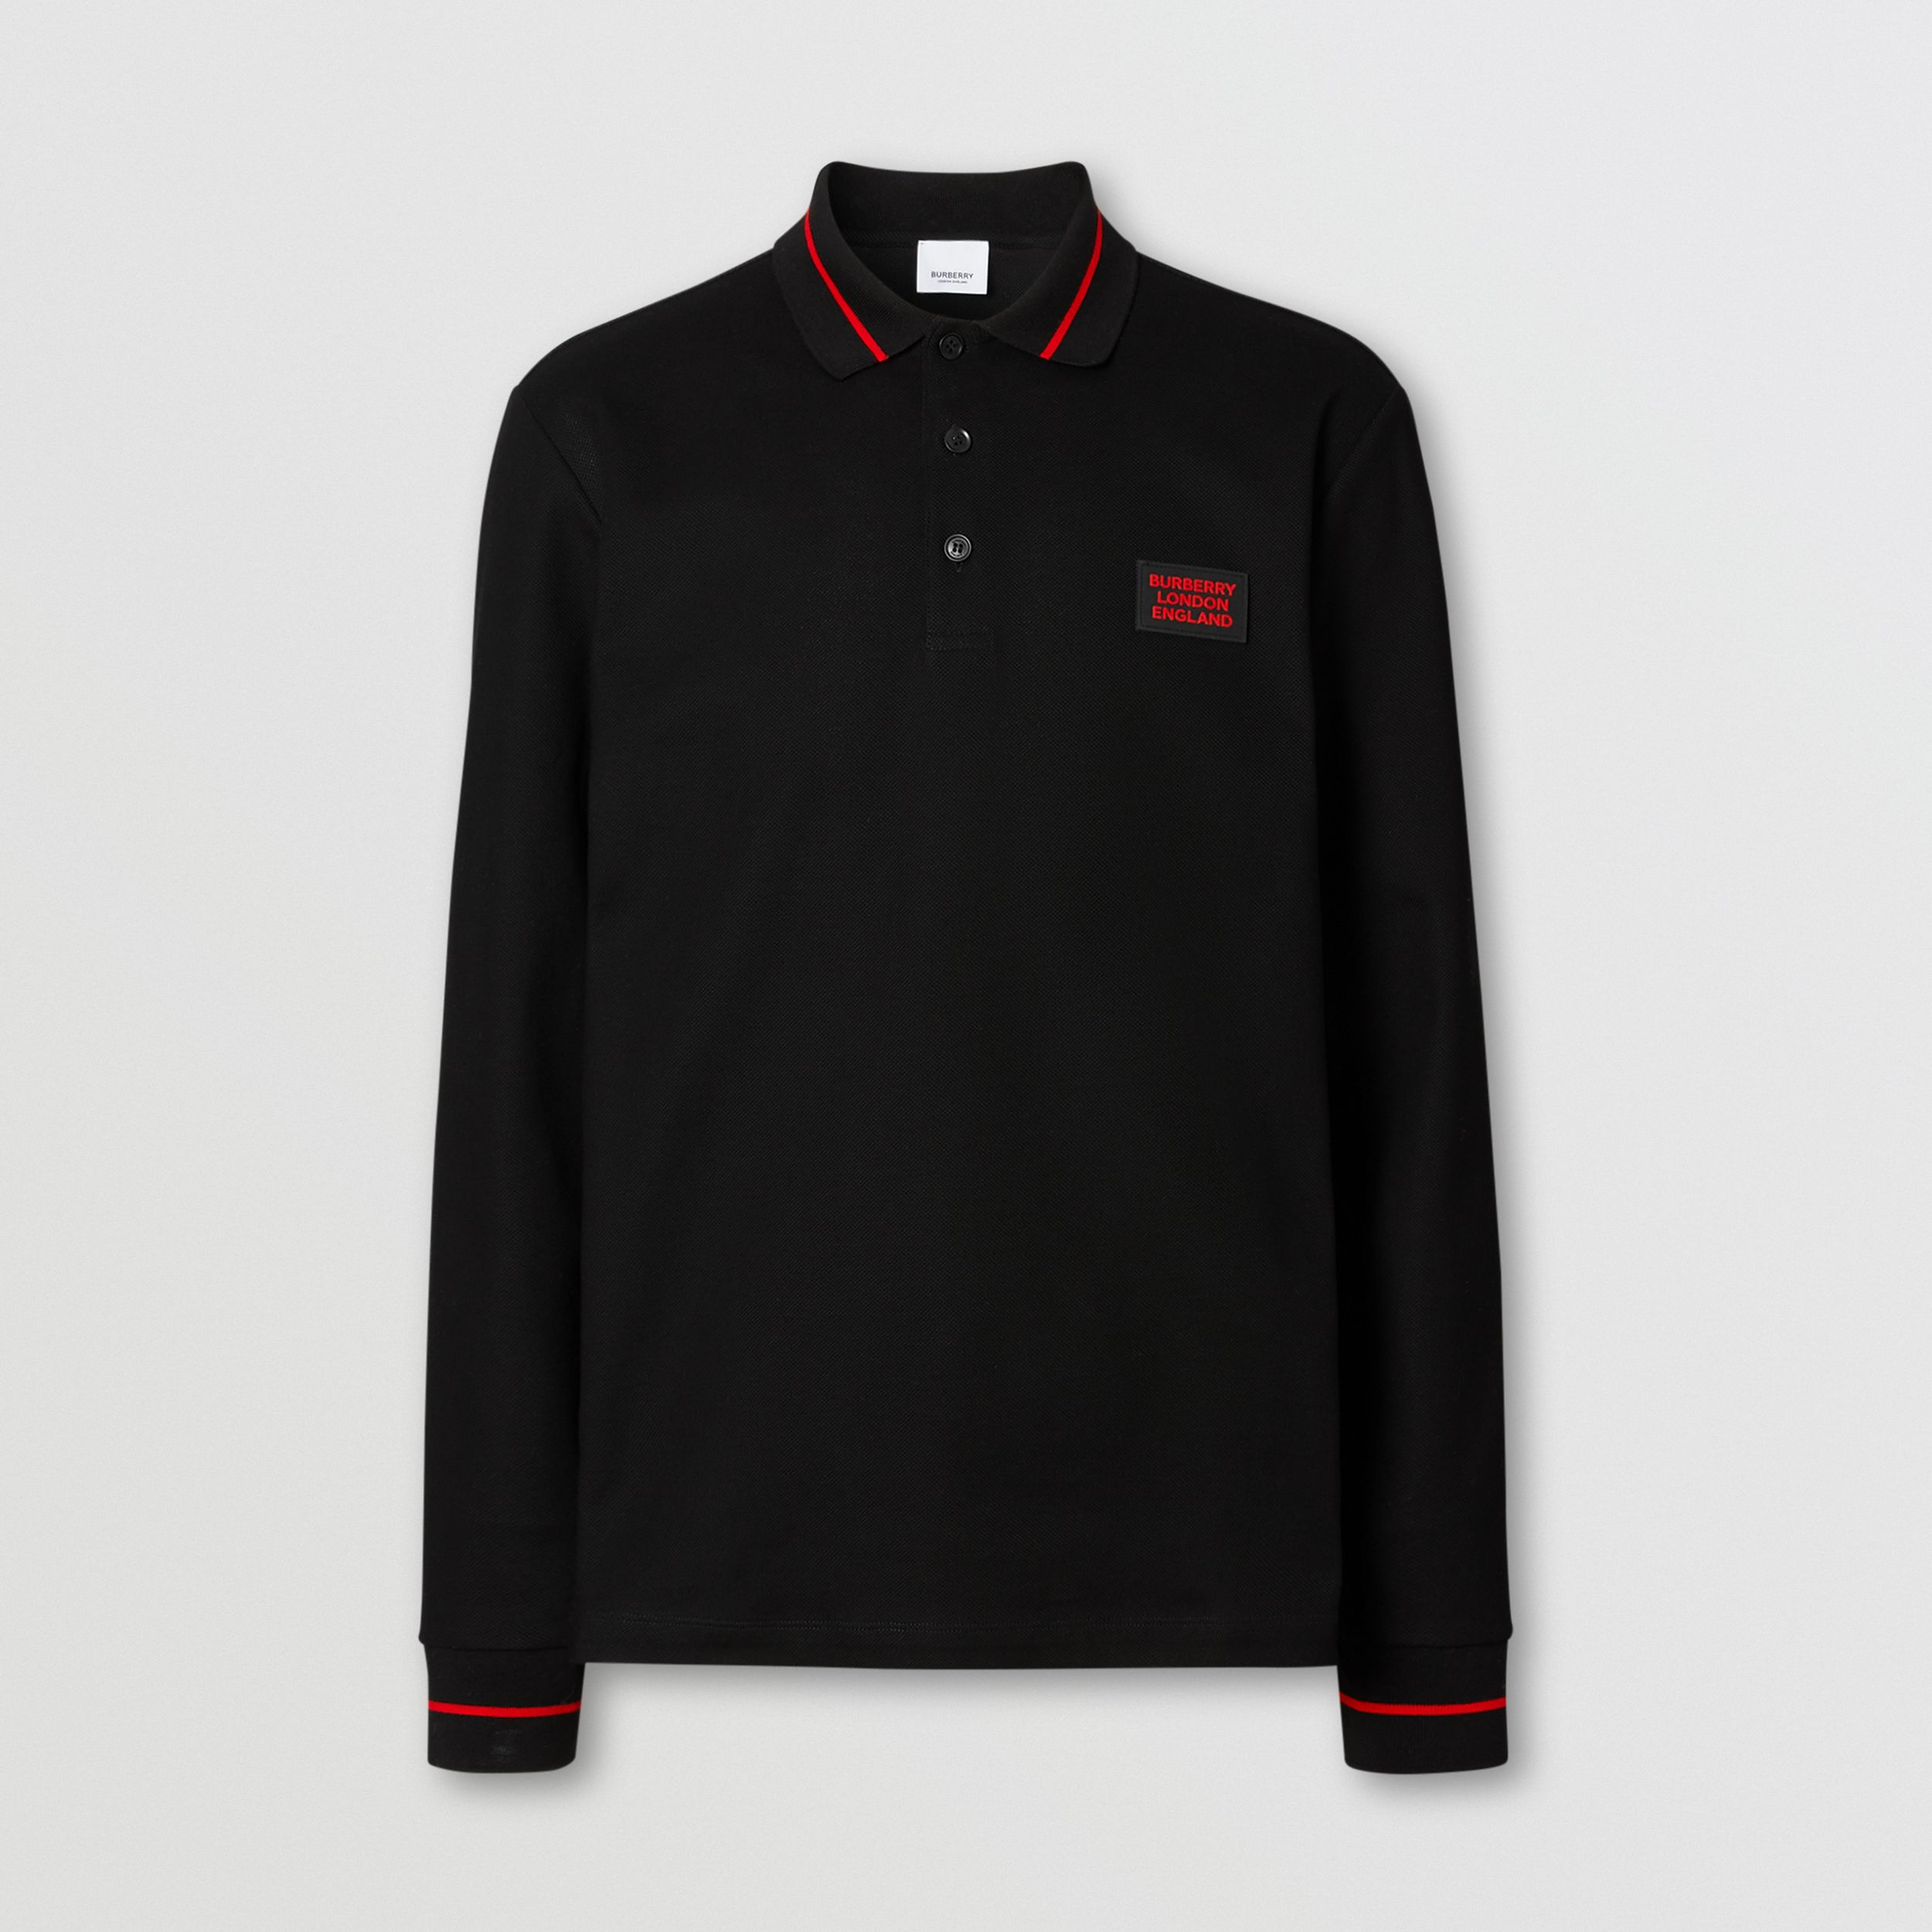 Long-sleeve Logo Appliqué Cotton Polo Shirt in Black - Men | Burberry - 4